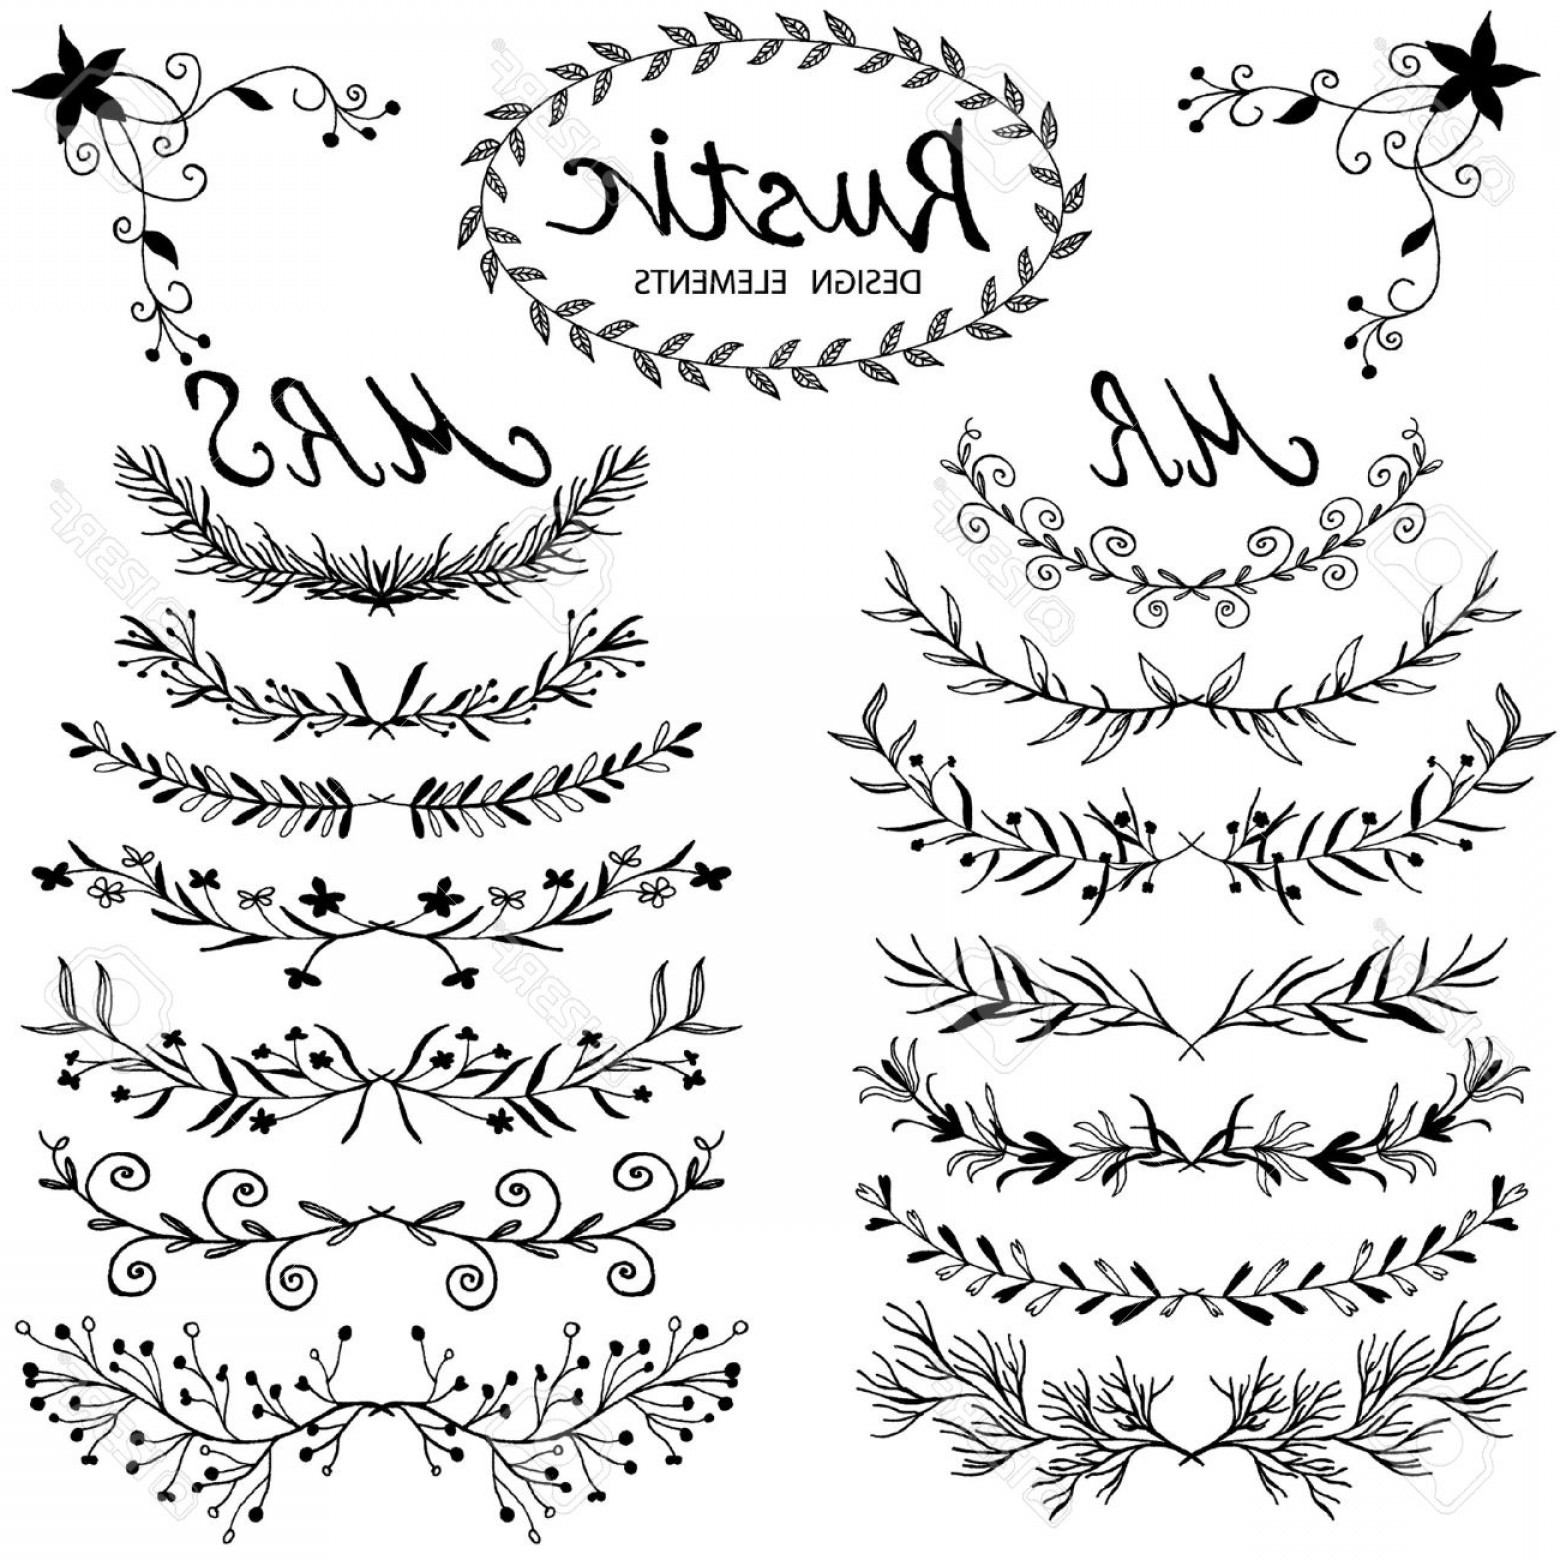 1560x1560 Photostock Vector Hand Drawn Vector Floral Design Elements In